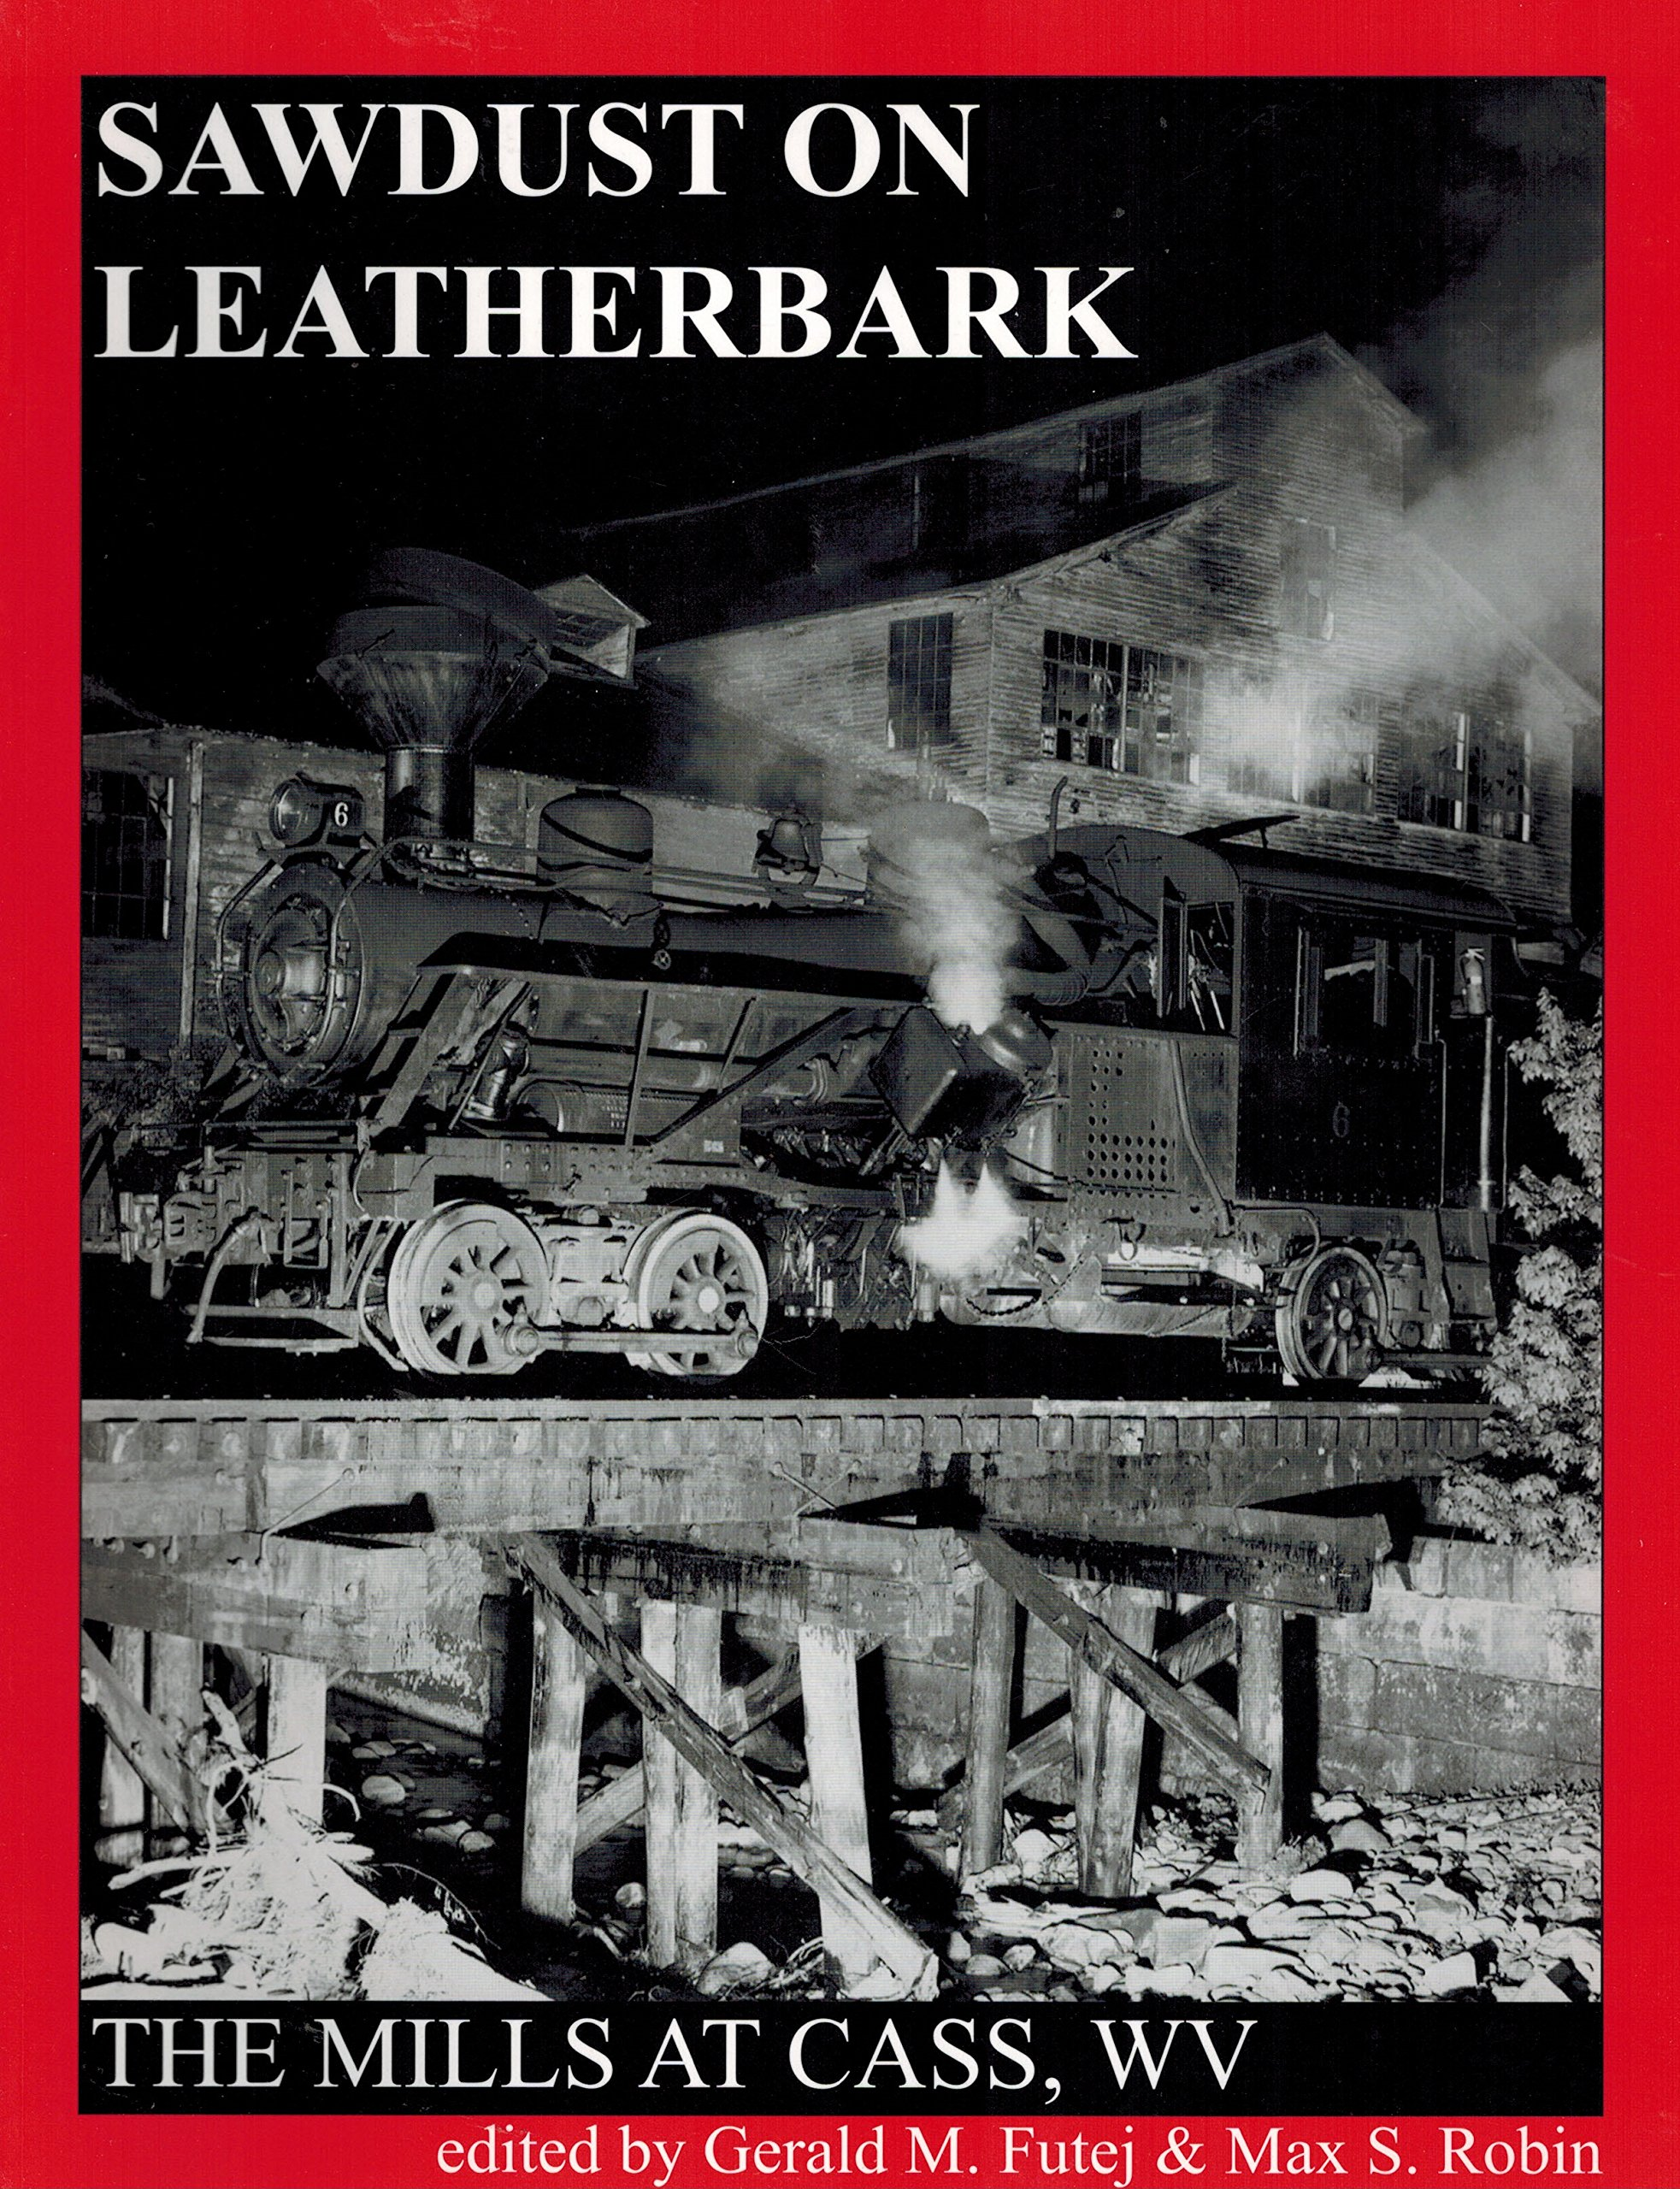 Read Online Sawdust on Leatherbark The Mills at Cass, WV ebook